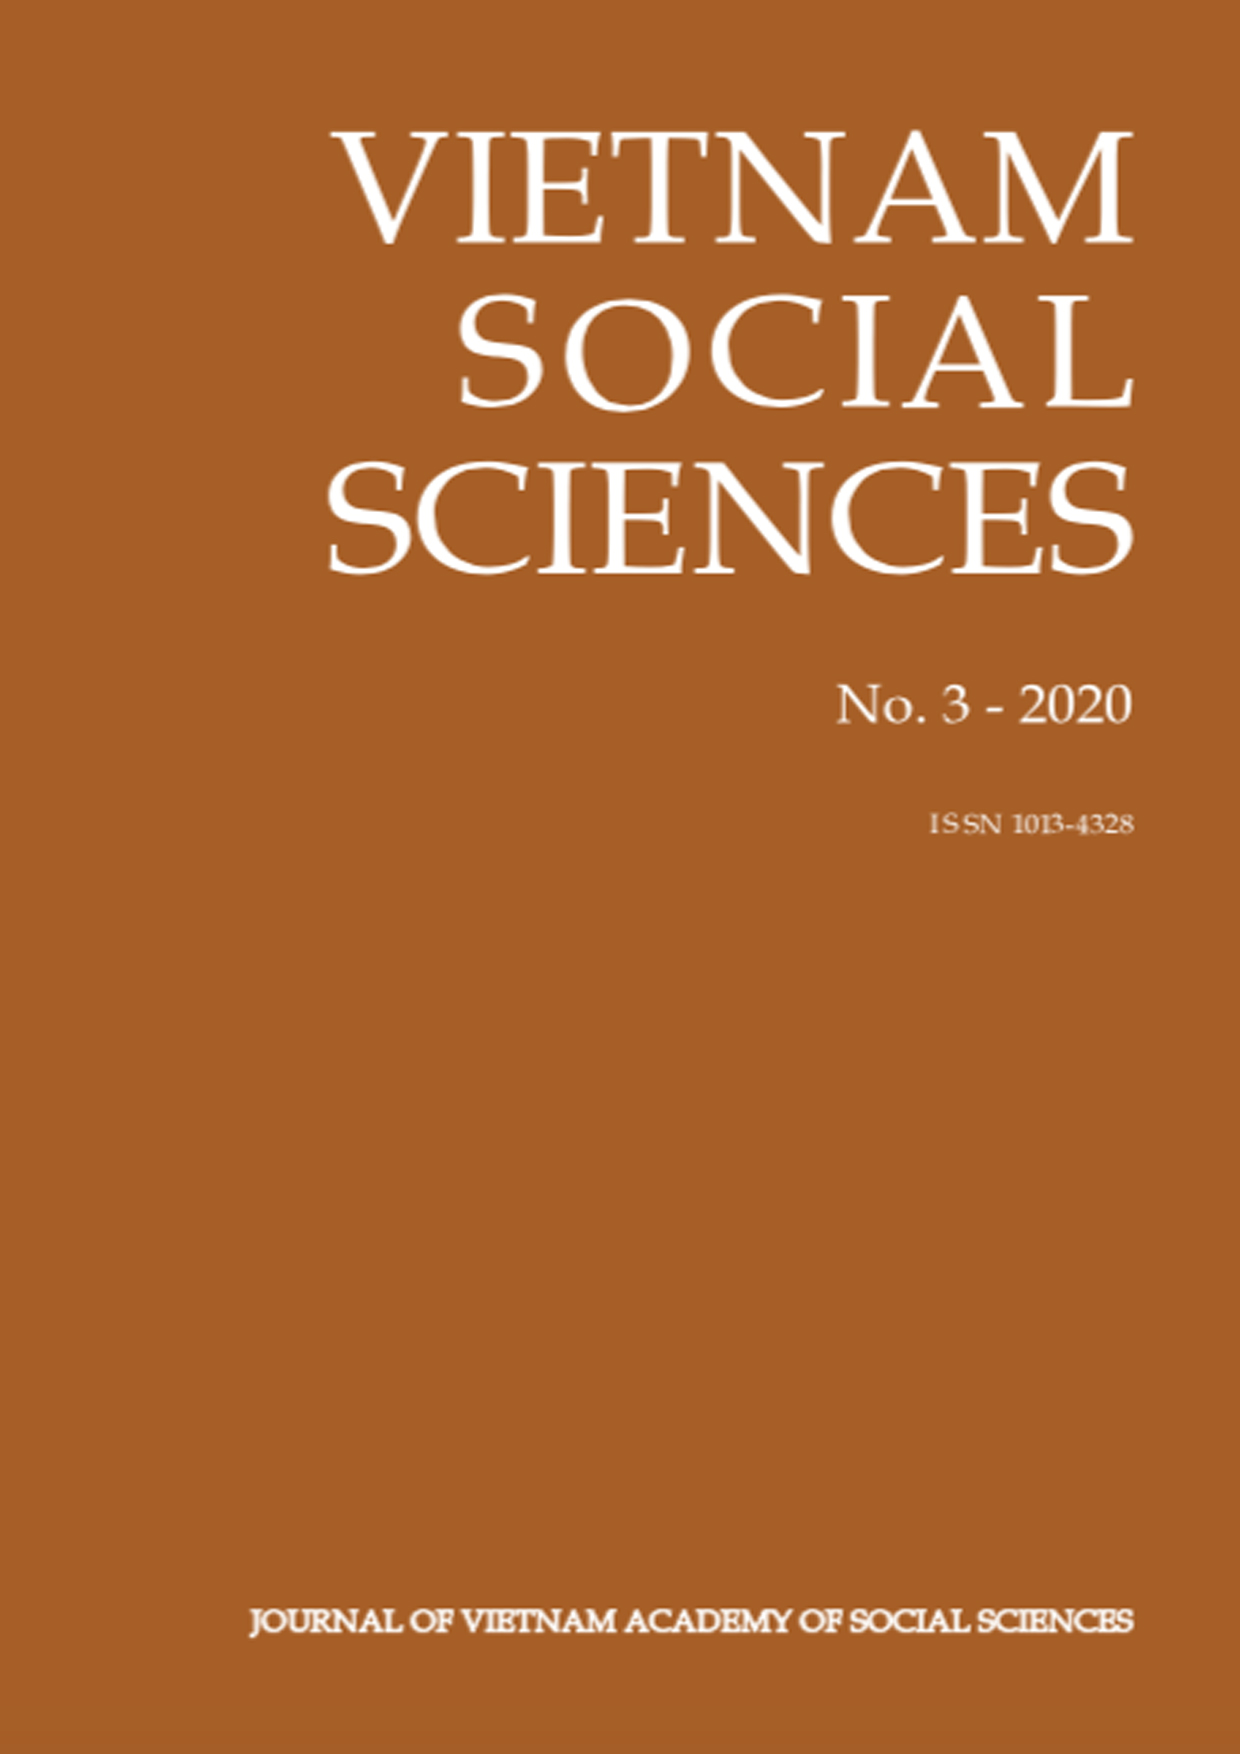 Vietnam Social Sciences. No. 3 - 2020